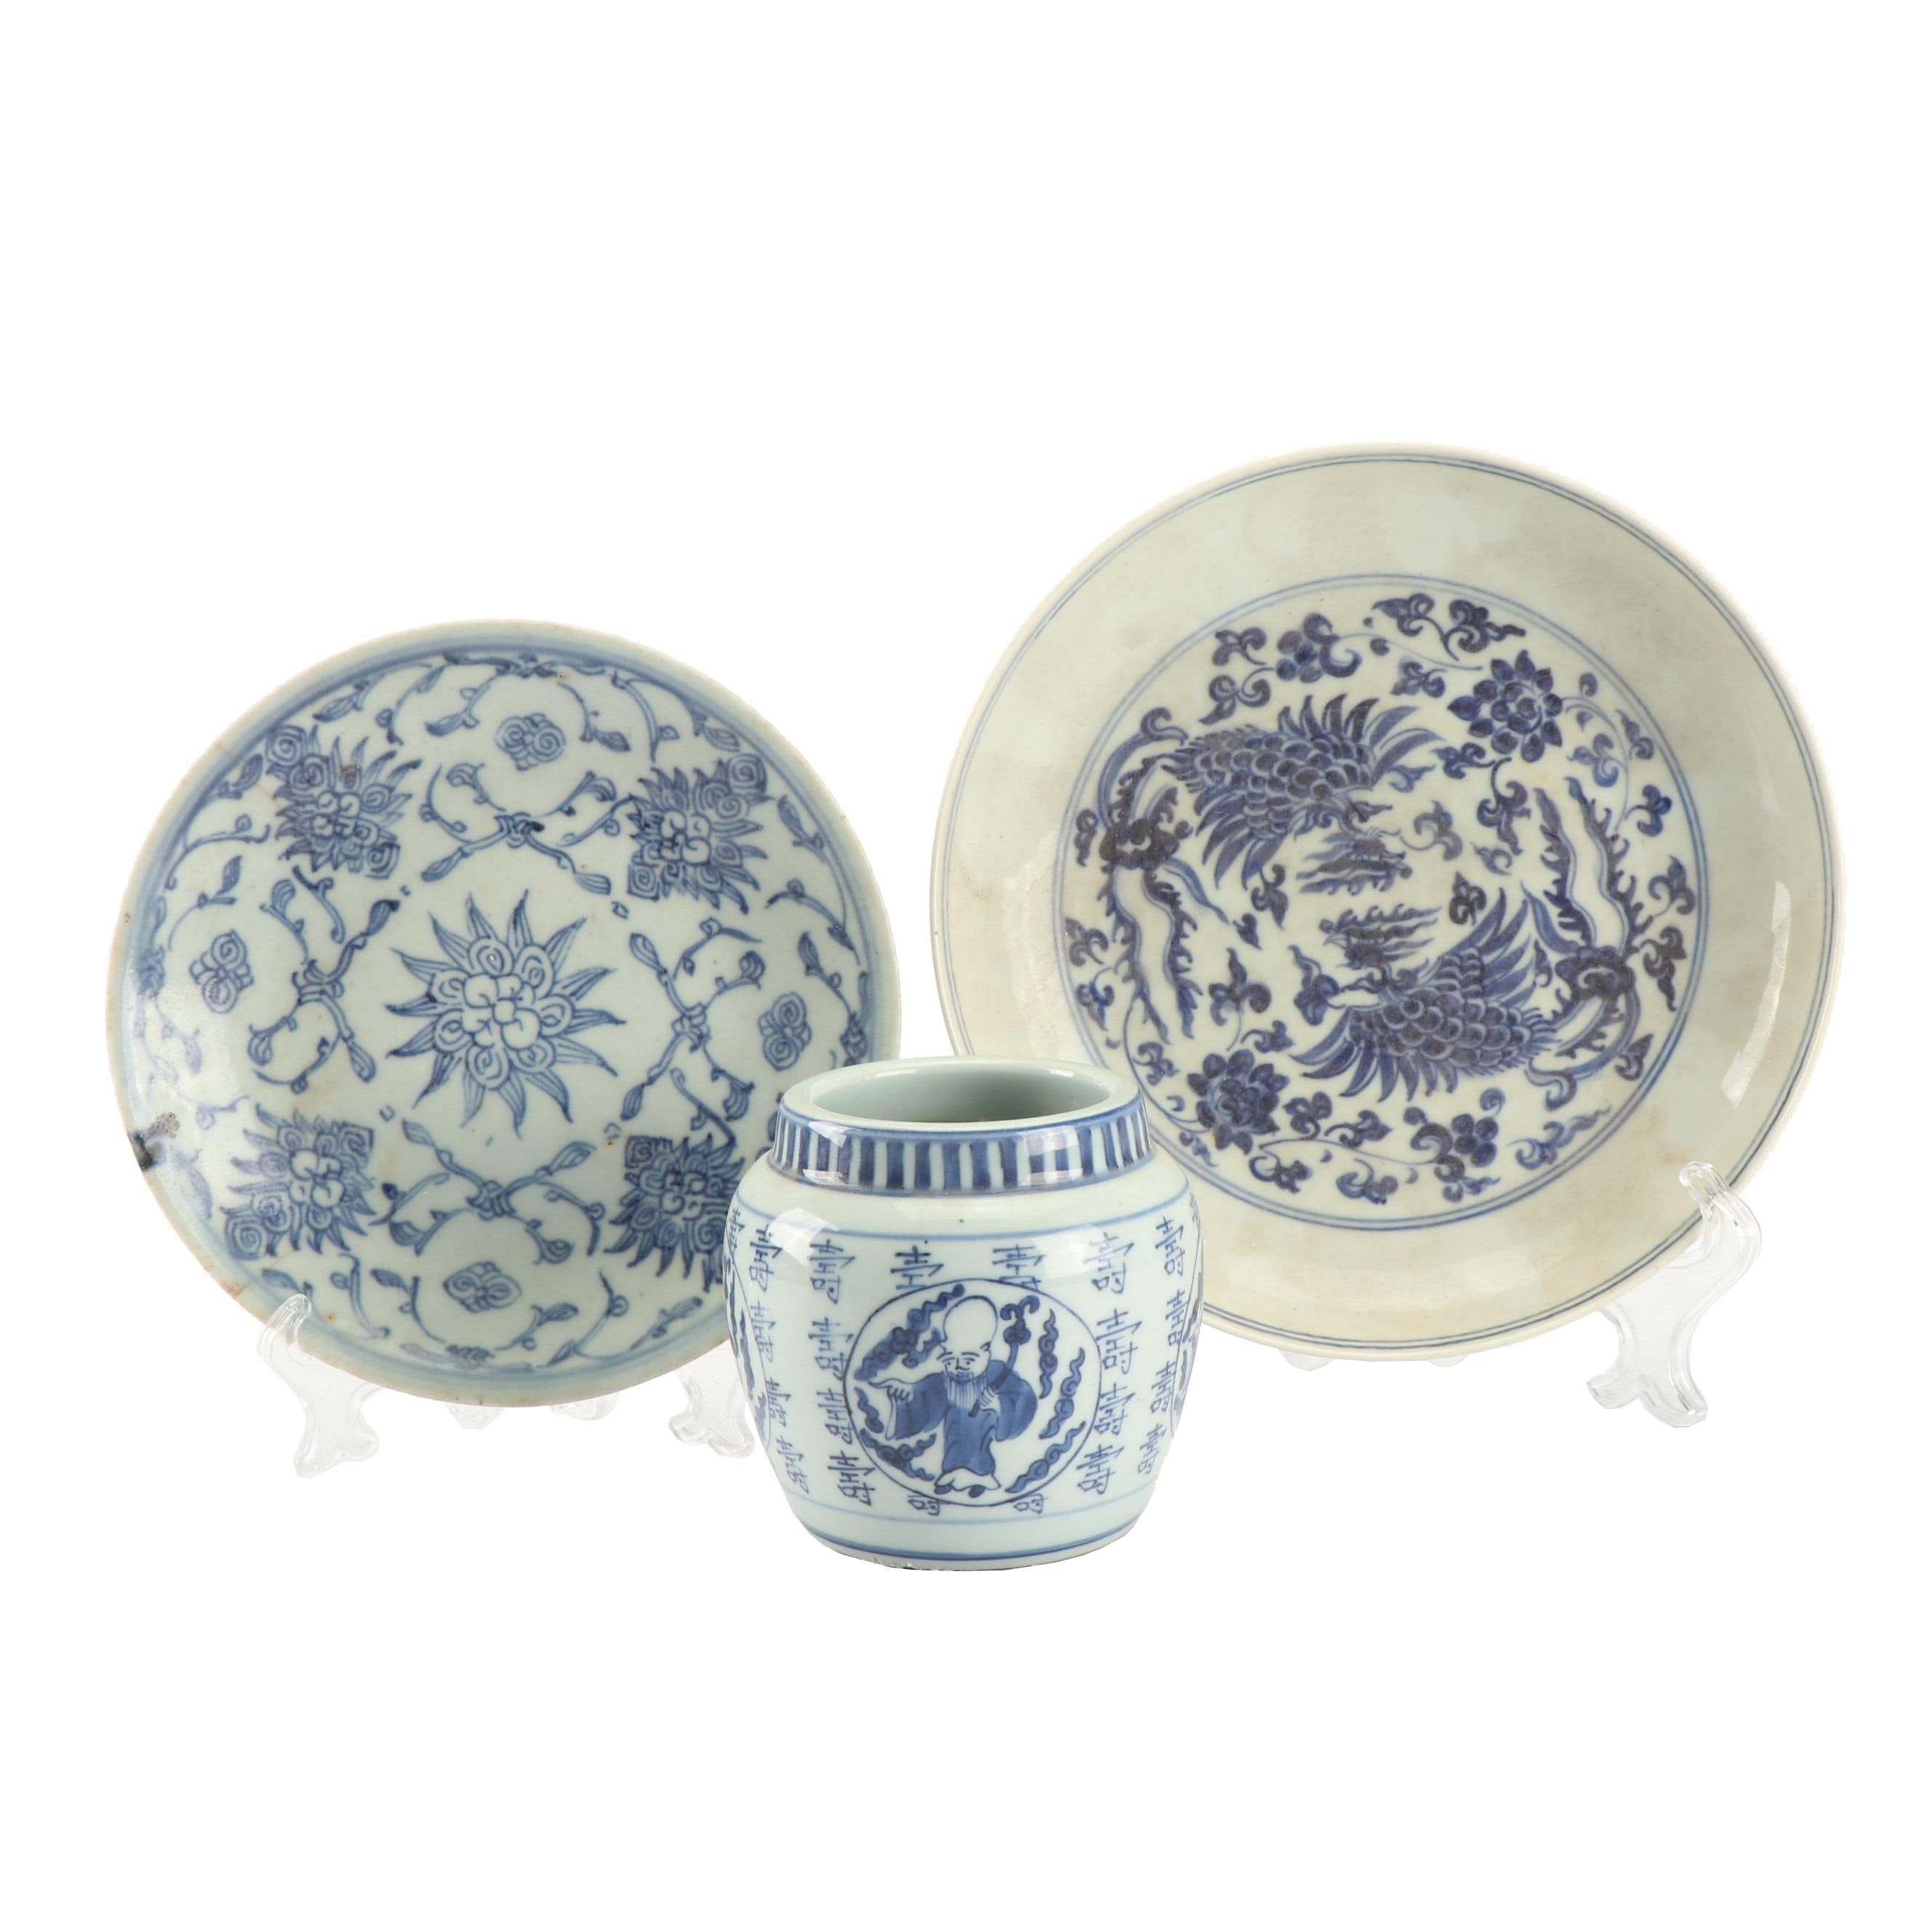 Chinese Blue and White Decorative Plates and Planter